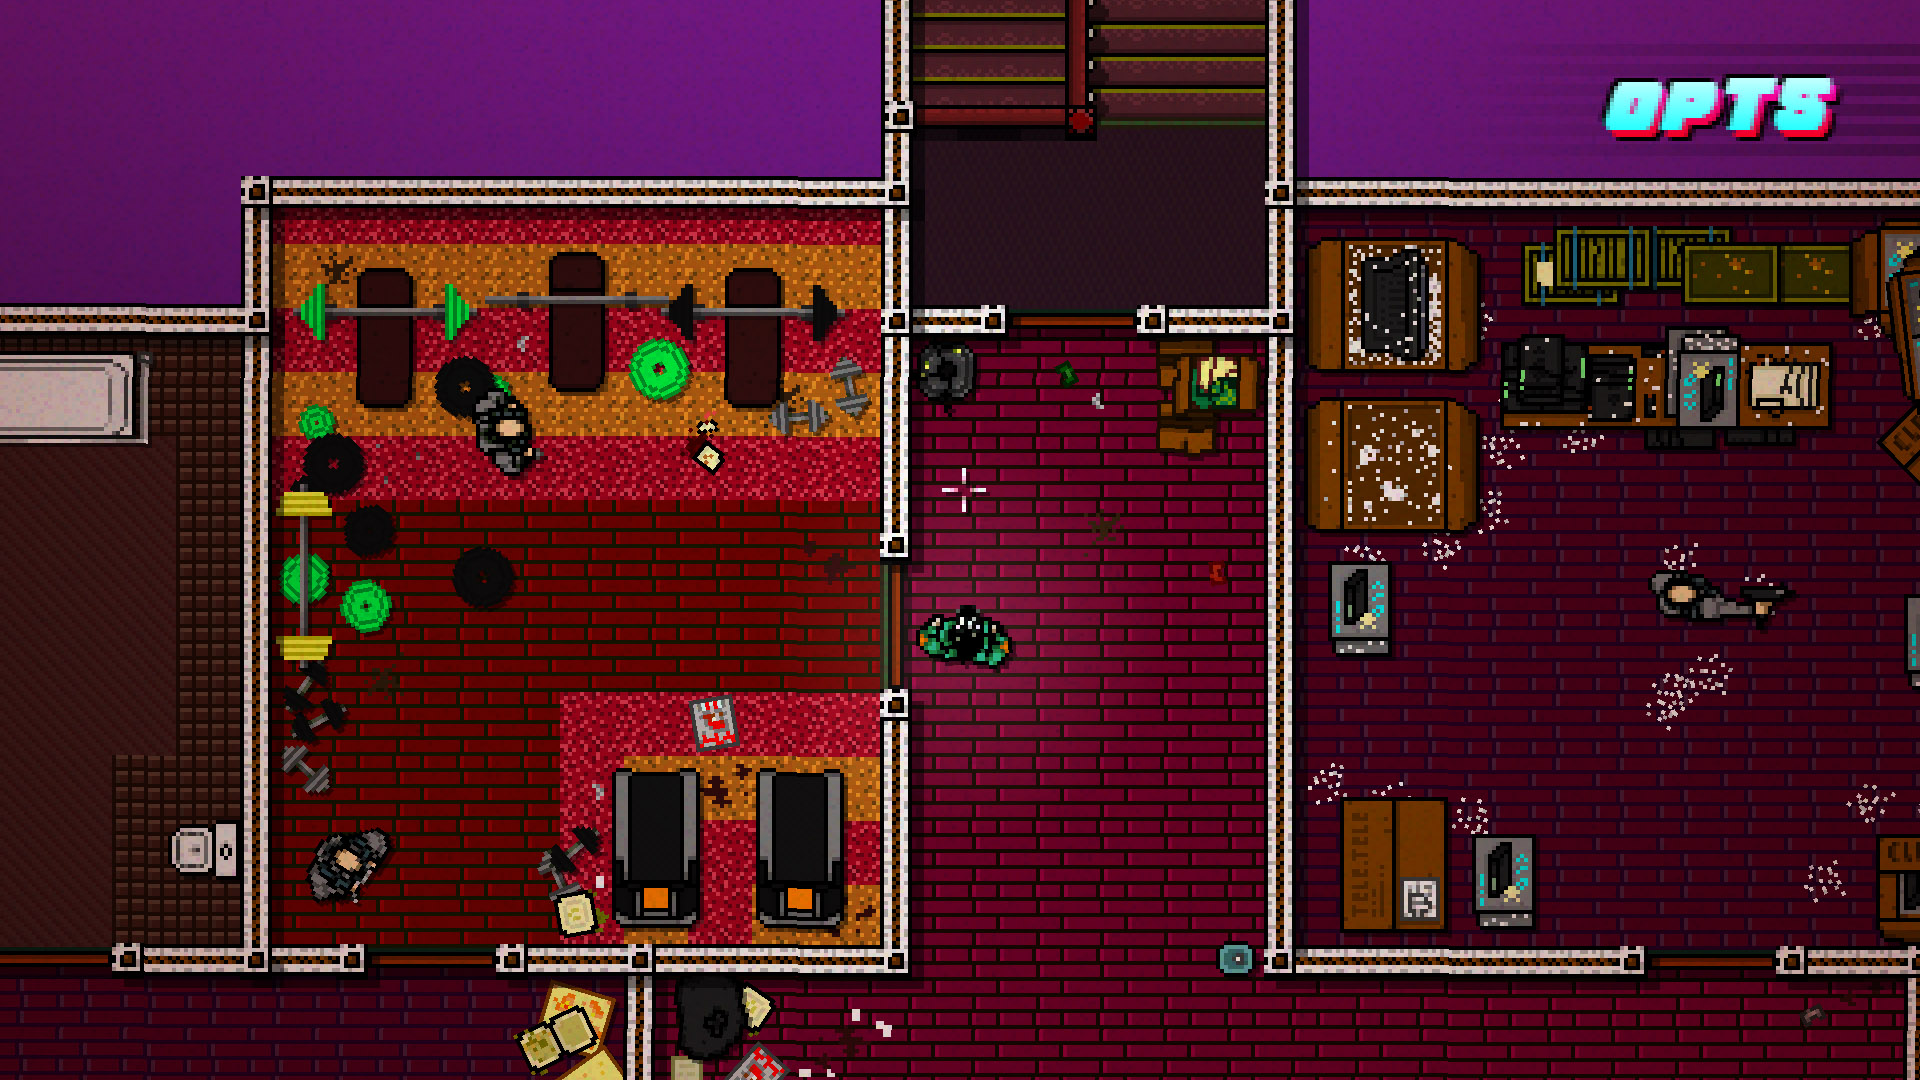 Hotline Miami 2 [1.06] (2015) Steam-Rip - Скриншот 1